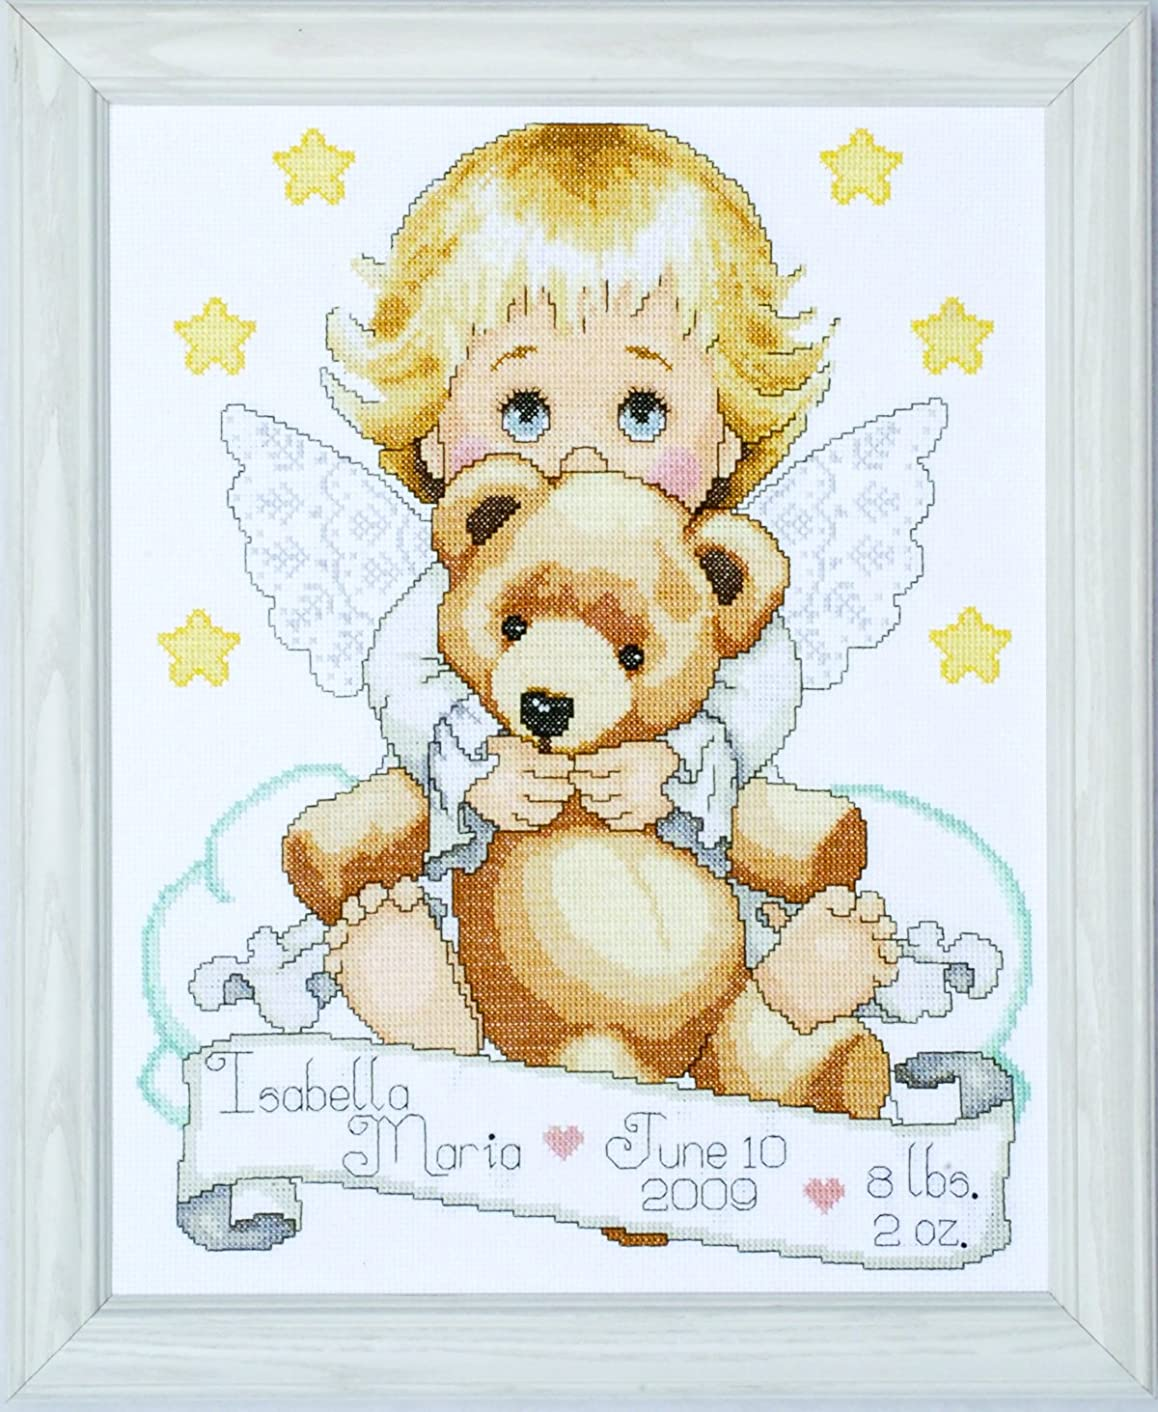 Tobin T21712 14 Count Angel Birth Record Counted Cross Stitch Kit, 11 by 14-Inch